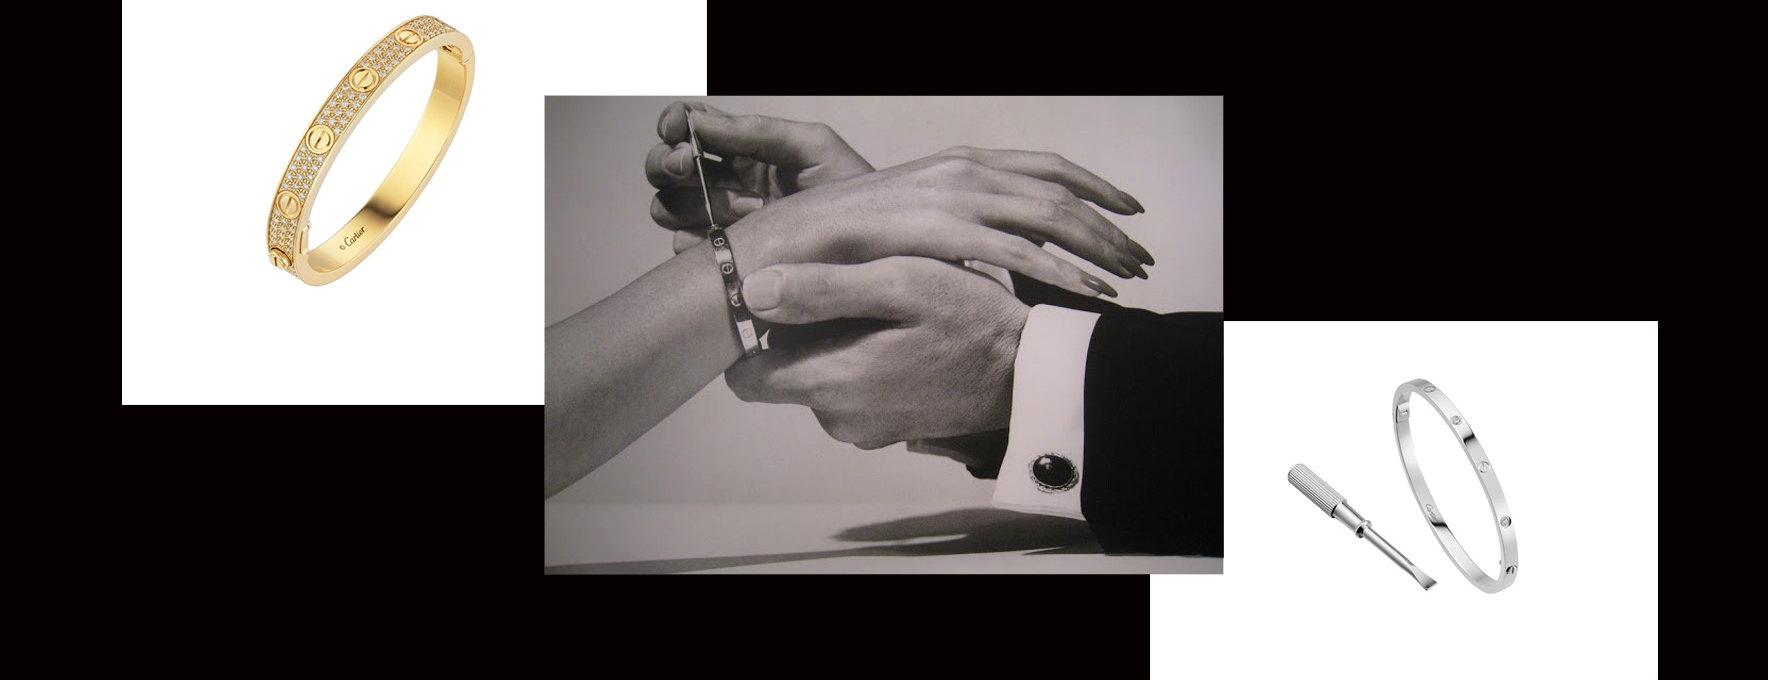 The history of the Cartier Love Bracelet